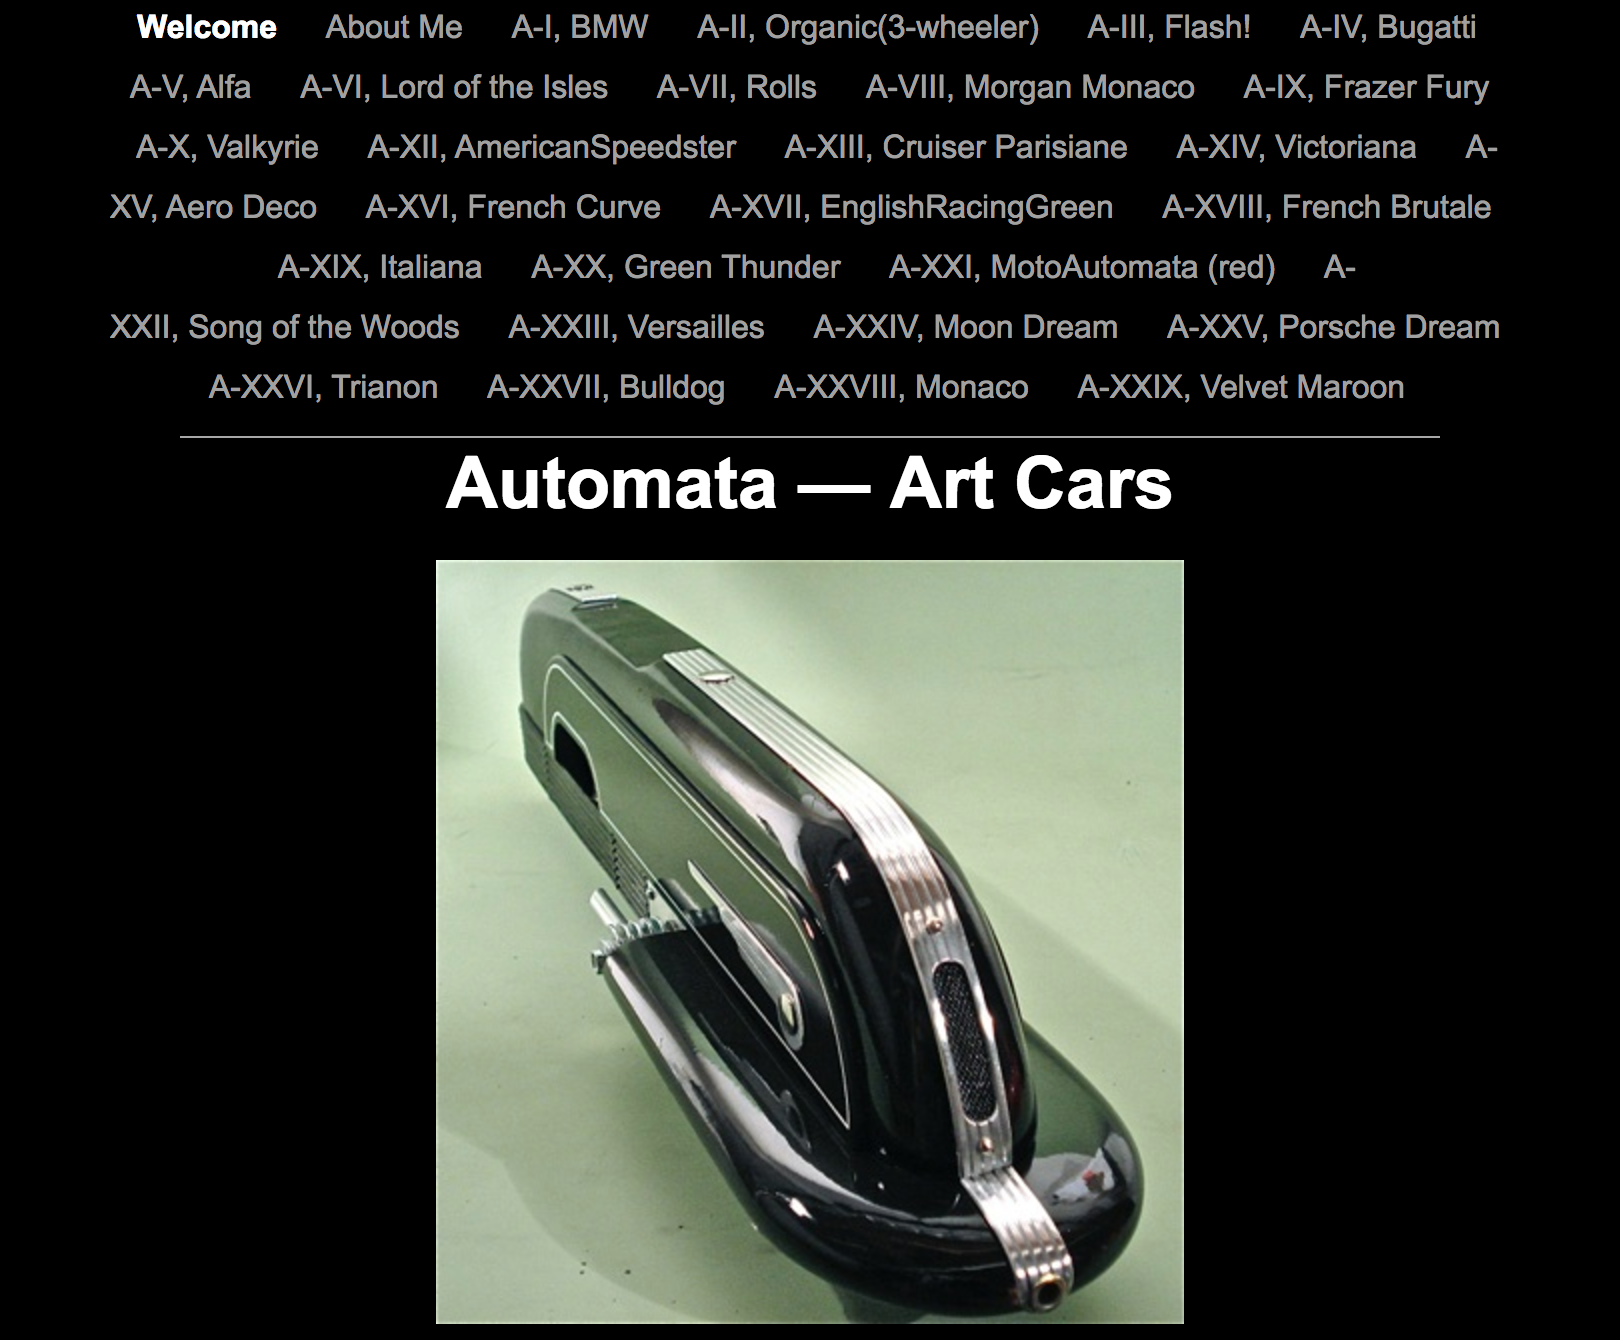 Automata — Art Cars